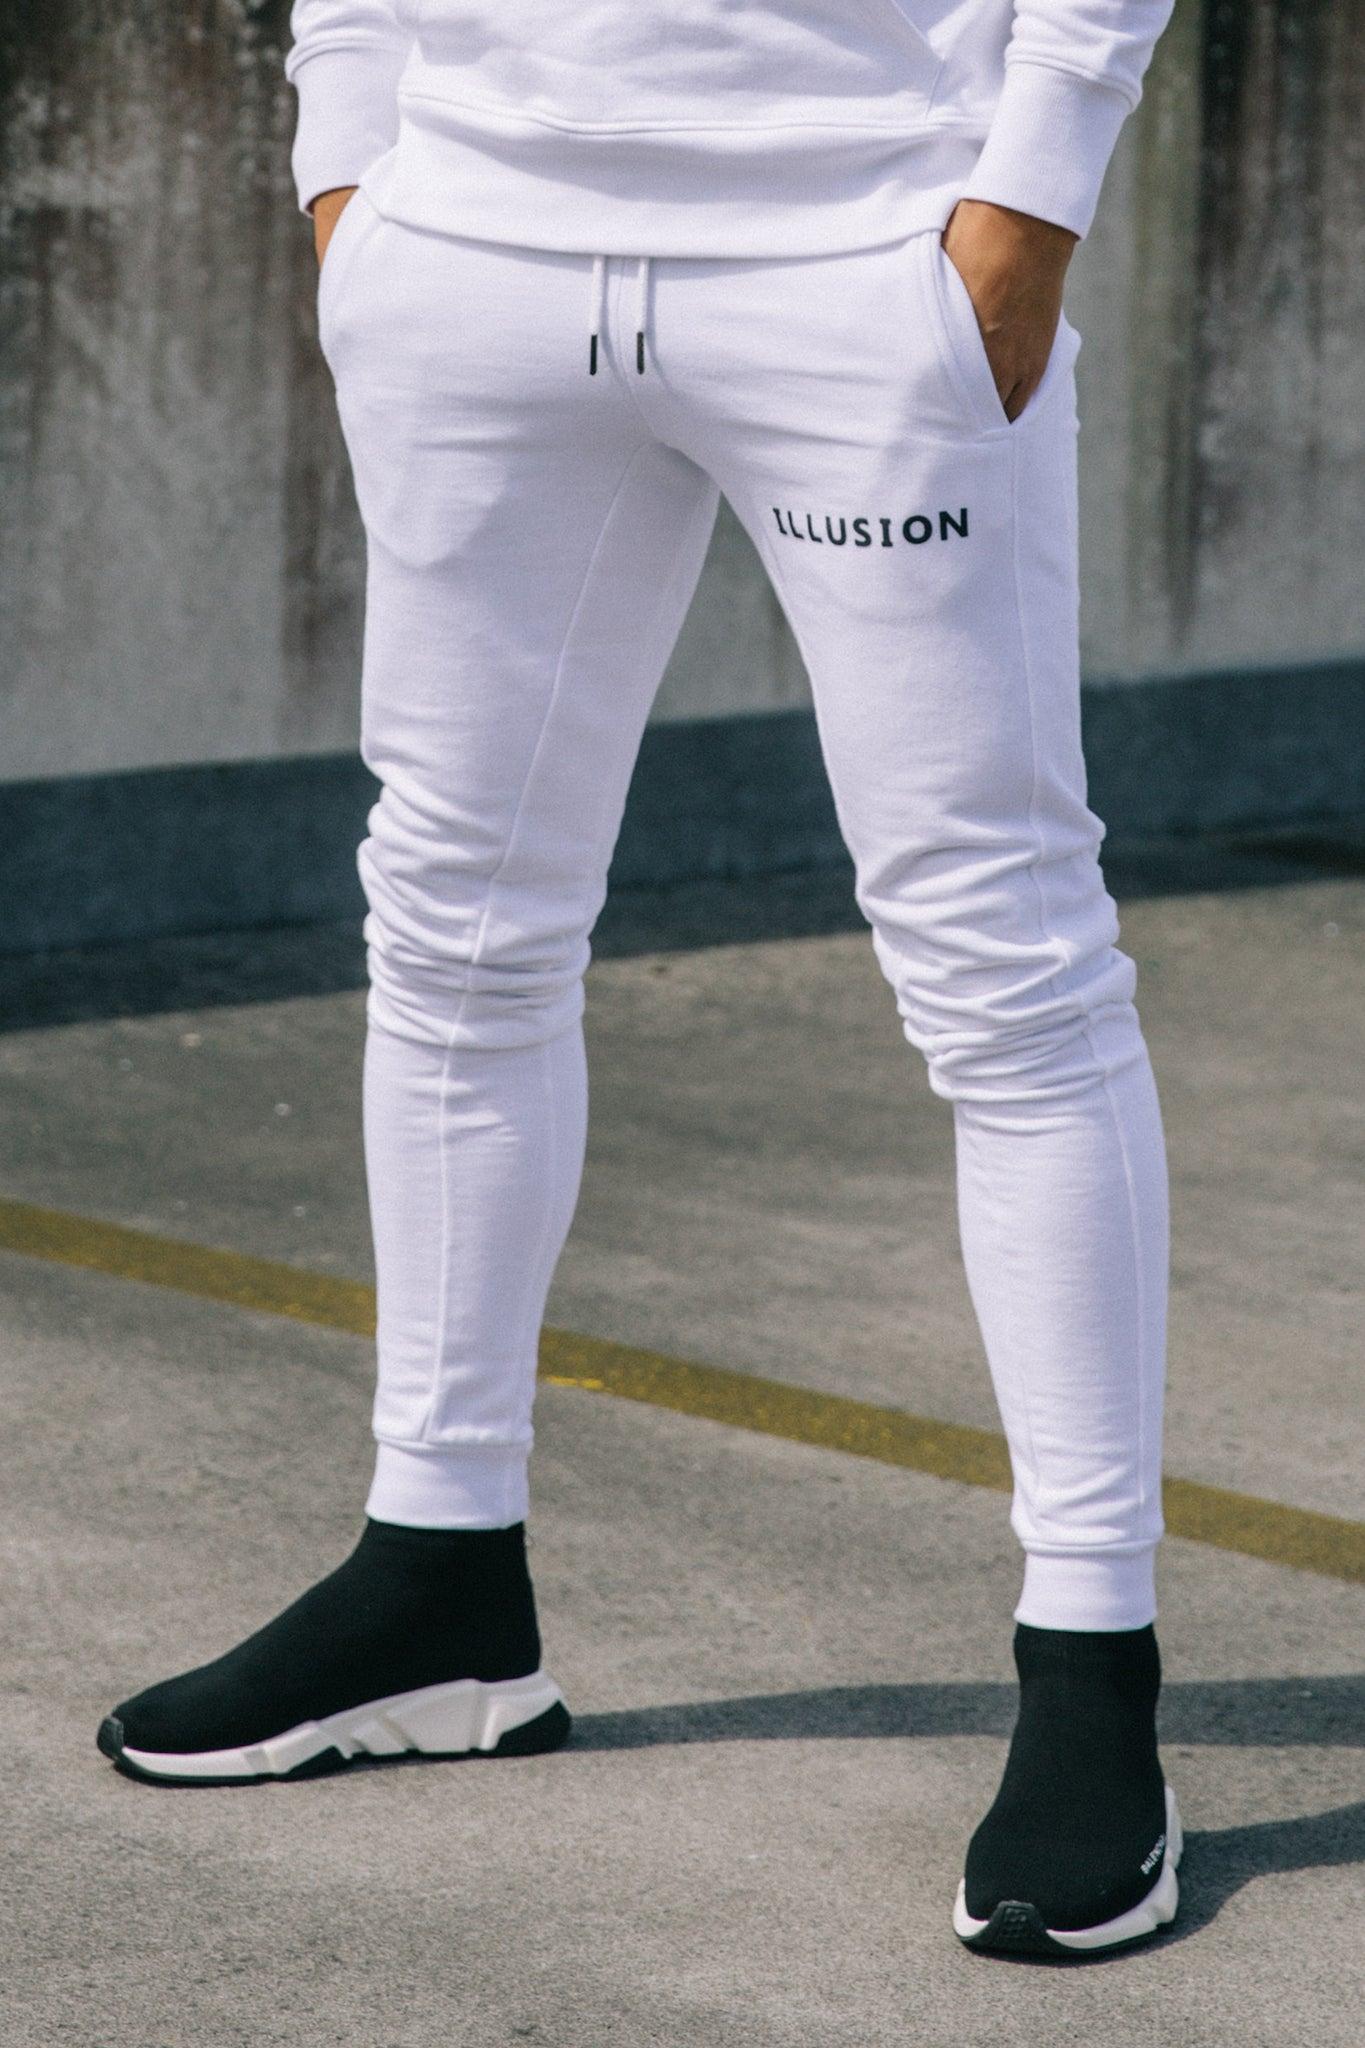 WHITE JOGGERS - Illusion Attire